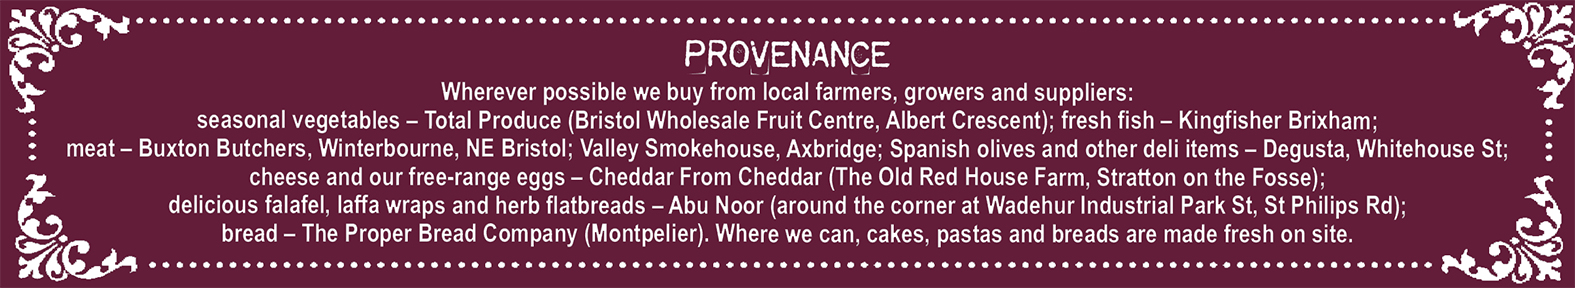 Provenance  Wherever possible we buy from local farmers, growers and suppliers:  seasonal vegetables – Total Produce (Bristol Wholesale Fruit Centre, Albert Crescent); fresh fish – Kingfisher Brixham;  meat – Buxton Butchers, Winterbourne, NE Bristol; Valley Smokehouse, Axbridge; Spanish olives and other deli items – Degusta, Whitehouse St;  cheese and our free-range eggs – Cheddar From Cheddar (The Old Red House Farm, Stratton on the Fosse);  delicious falafel, laffa wraps and herb flatbreads – Abu Noor (around the corner at Wadehur Industrial Park St, St Philips Rd);  bread – The Proper Bread Company (Montpelier). Where we can, cakes, pastas and breads are made fresh on site.